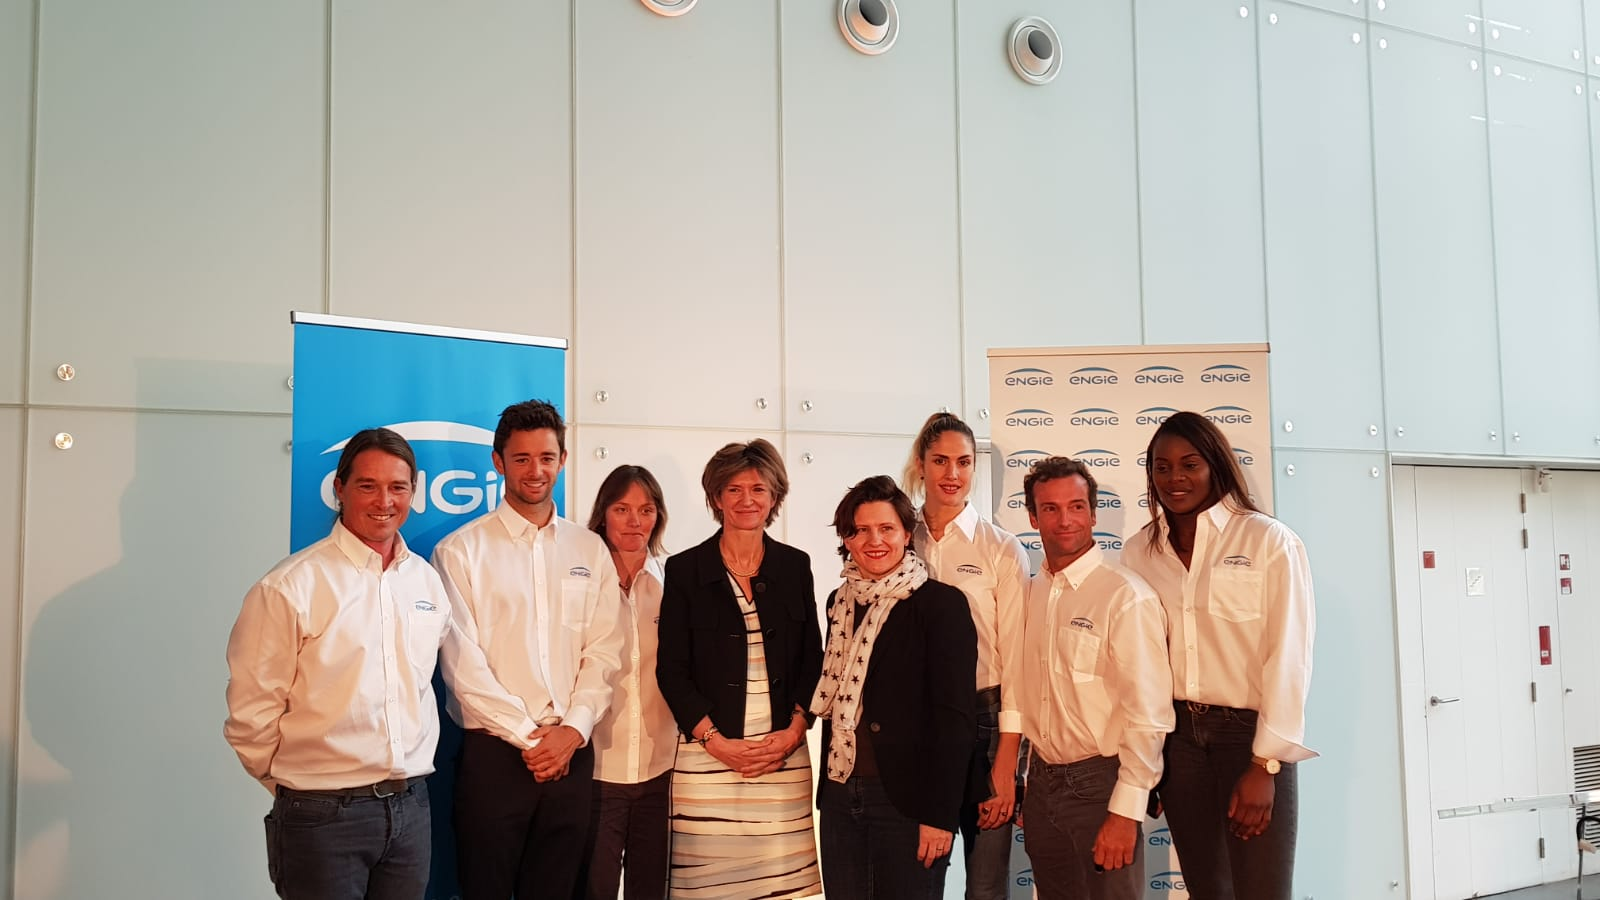 Signature Pacte de Performance Elodie Clouvel – Team ENGIE